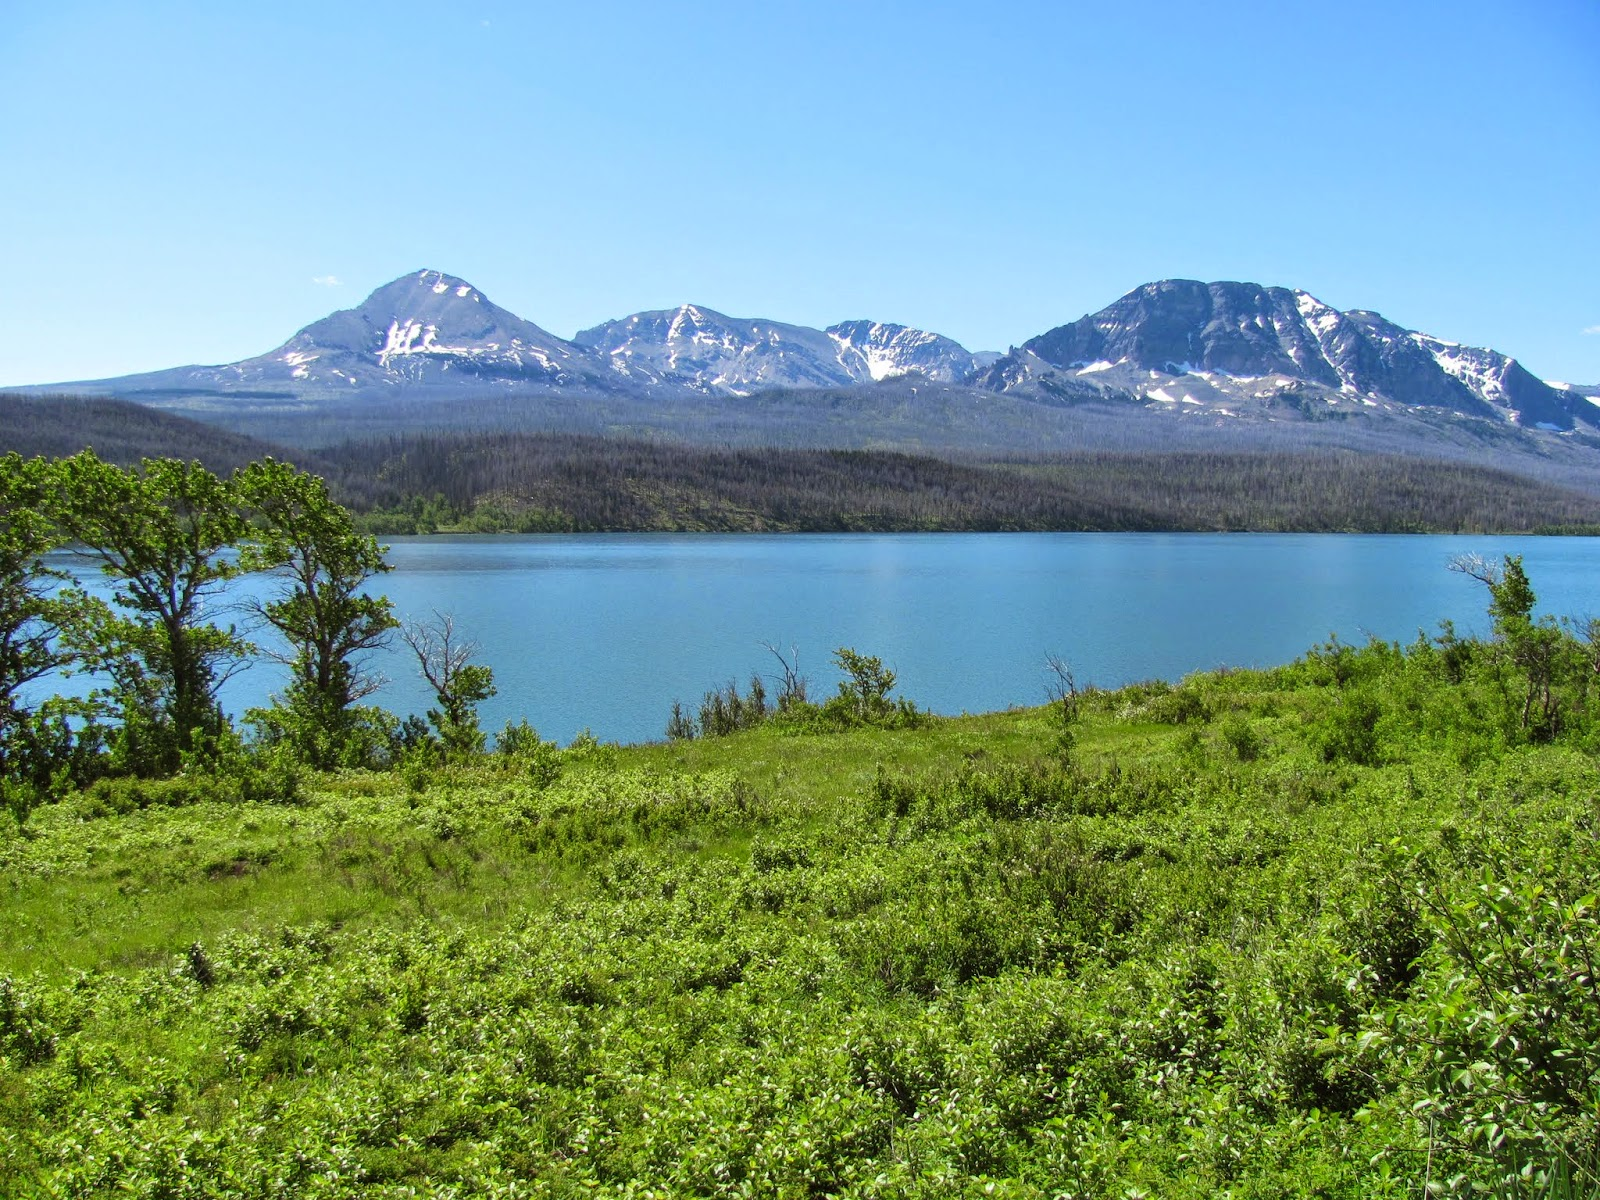 St. Mary Lake is mighty blue at Glacier National Park in Montana